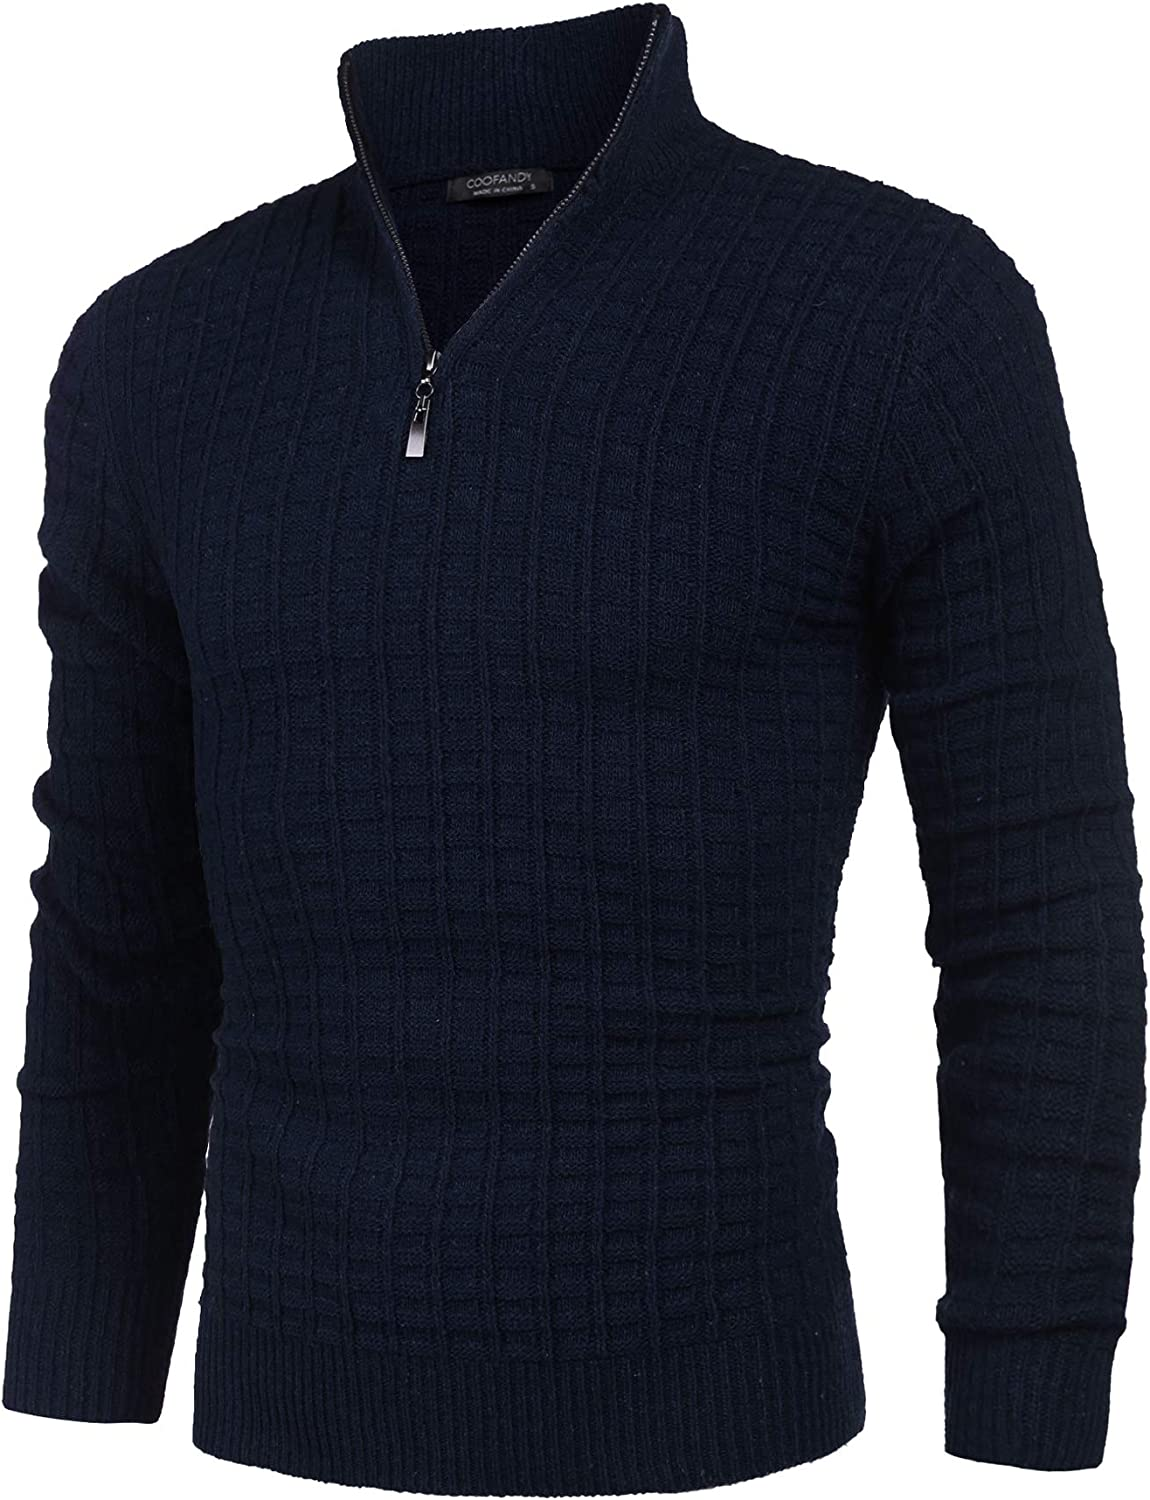 COOFANDY Mens Quarter Zip Sweaters Slim Fit Lightweight Cotton Knitted Mock Turtleneck Pullover